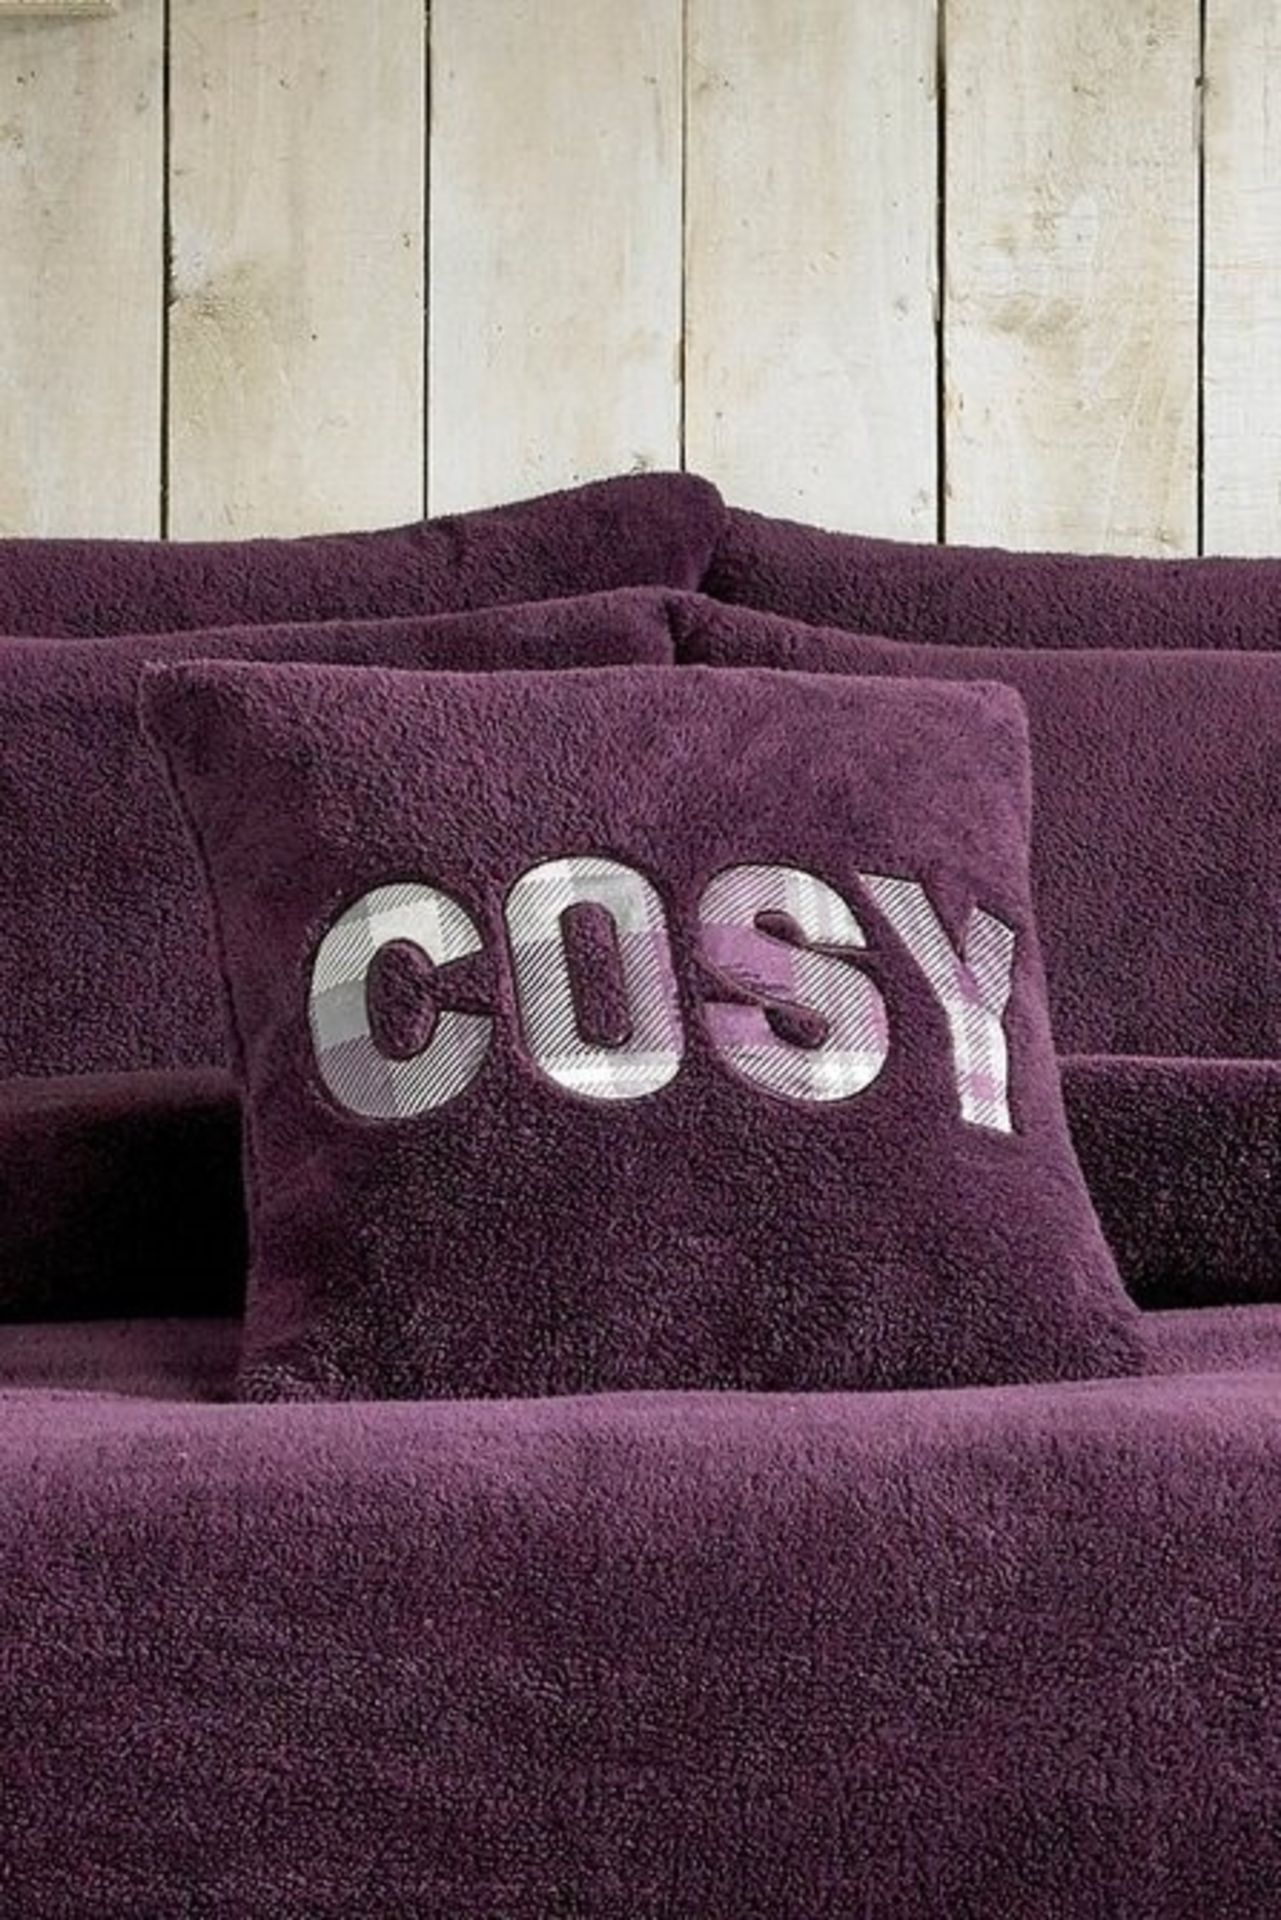 Lot 6 - 1 BAGGED KING SIZE ULTRA COSY TEDDY FLEECE IN PLUM / RRP £34.99 (PUBLIC VIEWING AVAILABLE)